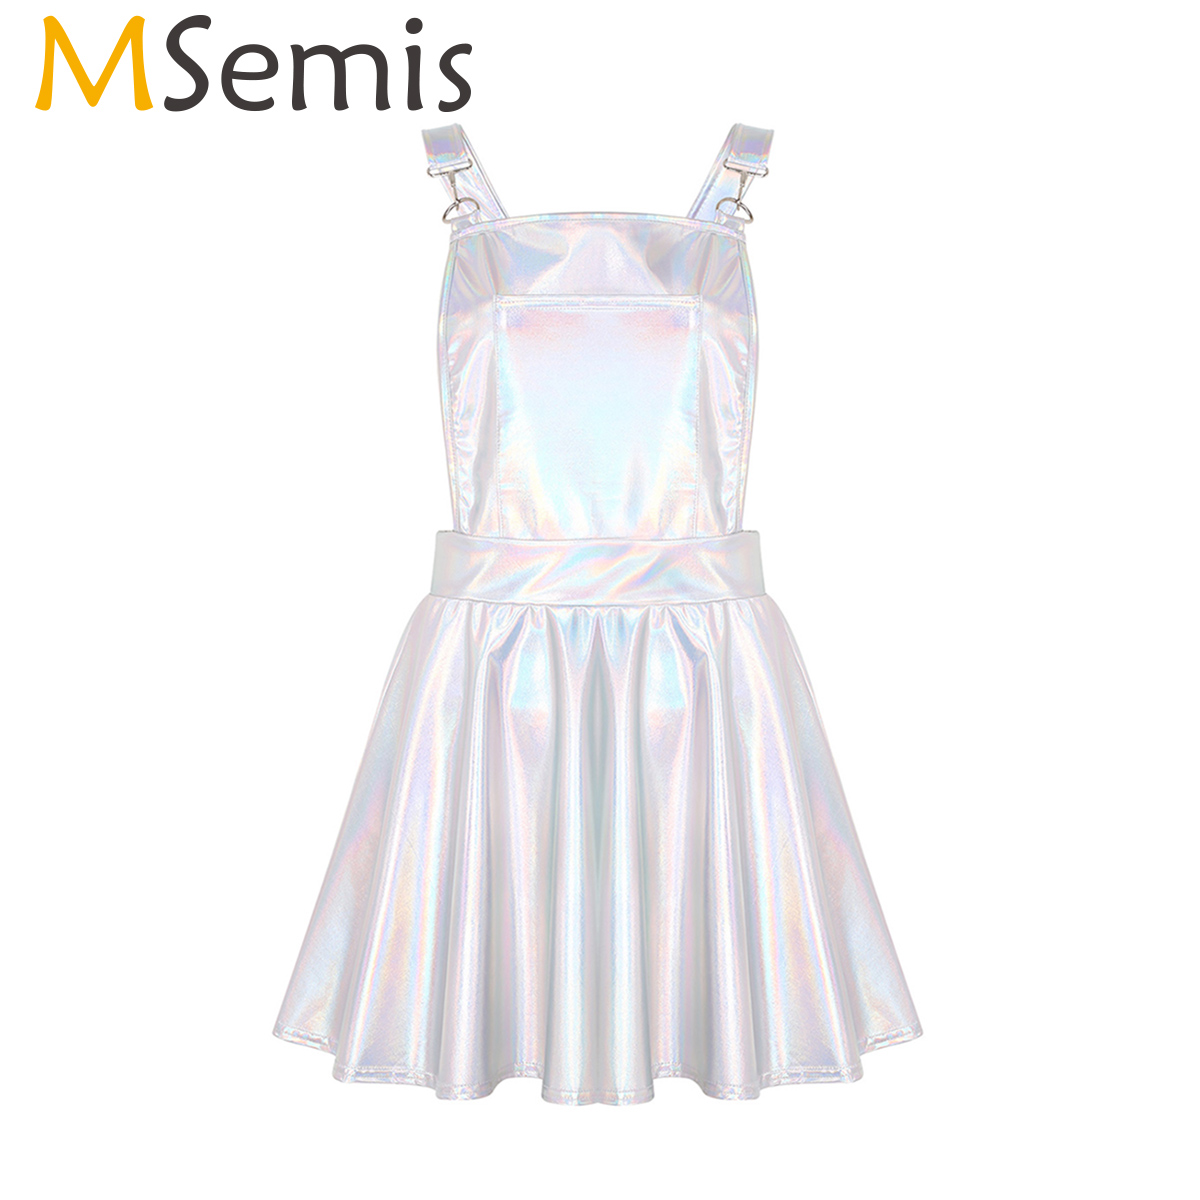 MSemis Women Shiny Metallic Holographic Clothes Festival Rave Holographic Clothing Suspender Skirt Pole Dance Wear Prom Costume